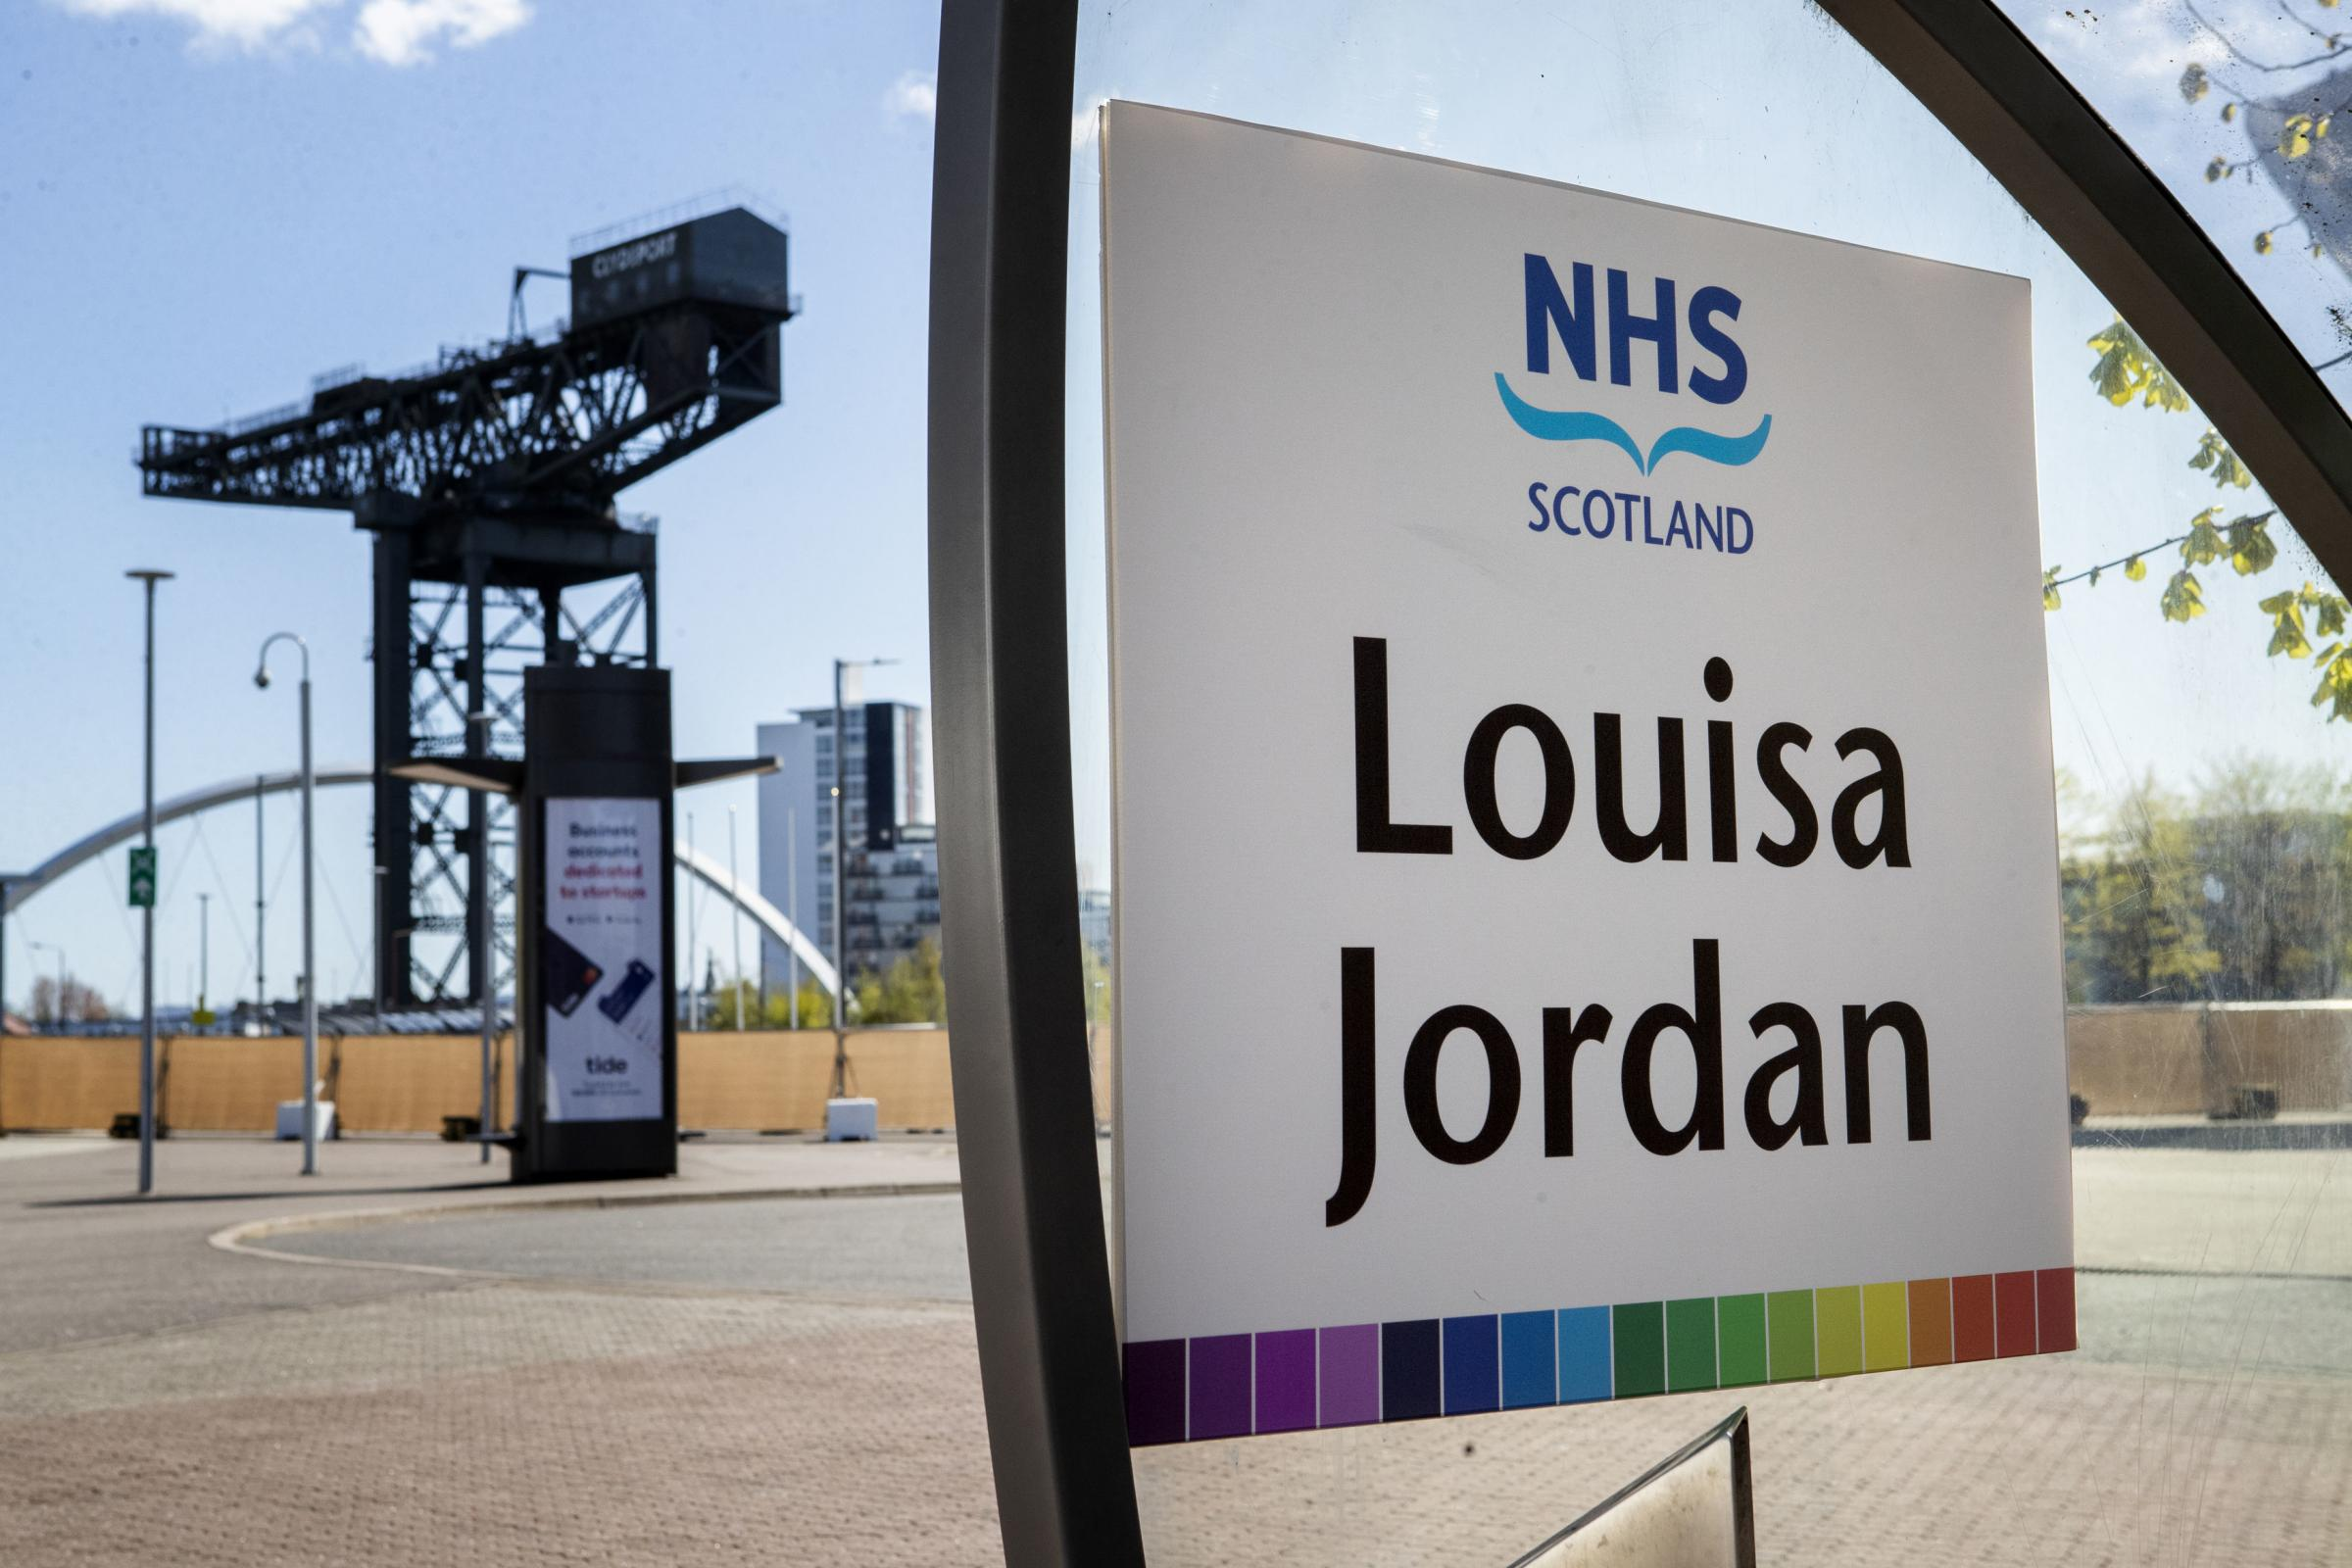 Taxpayers landed with £7m bill to dismantle Glasgow's Louisa Jordan hospital